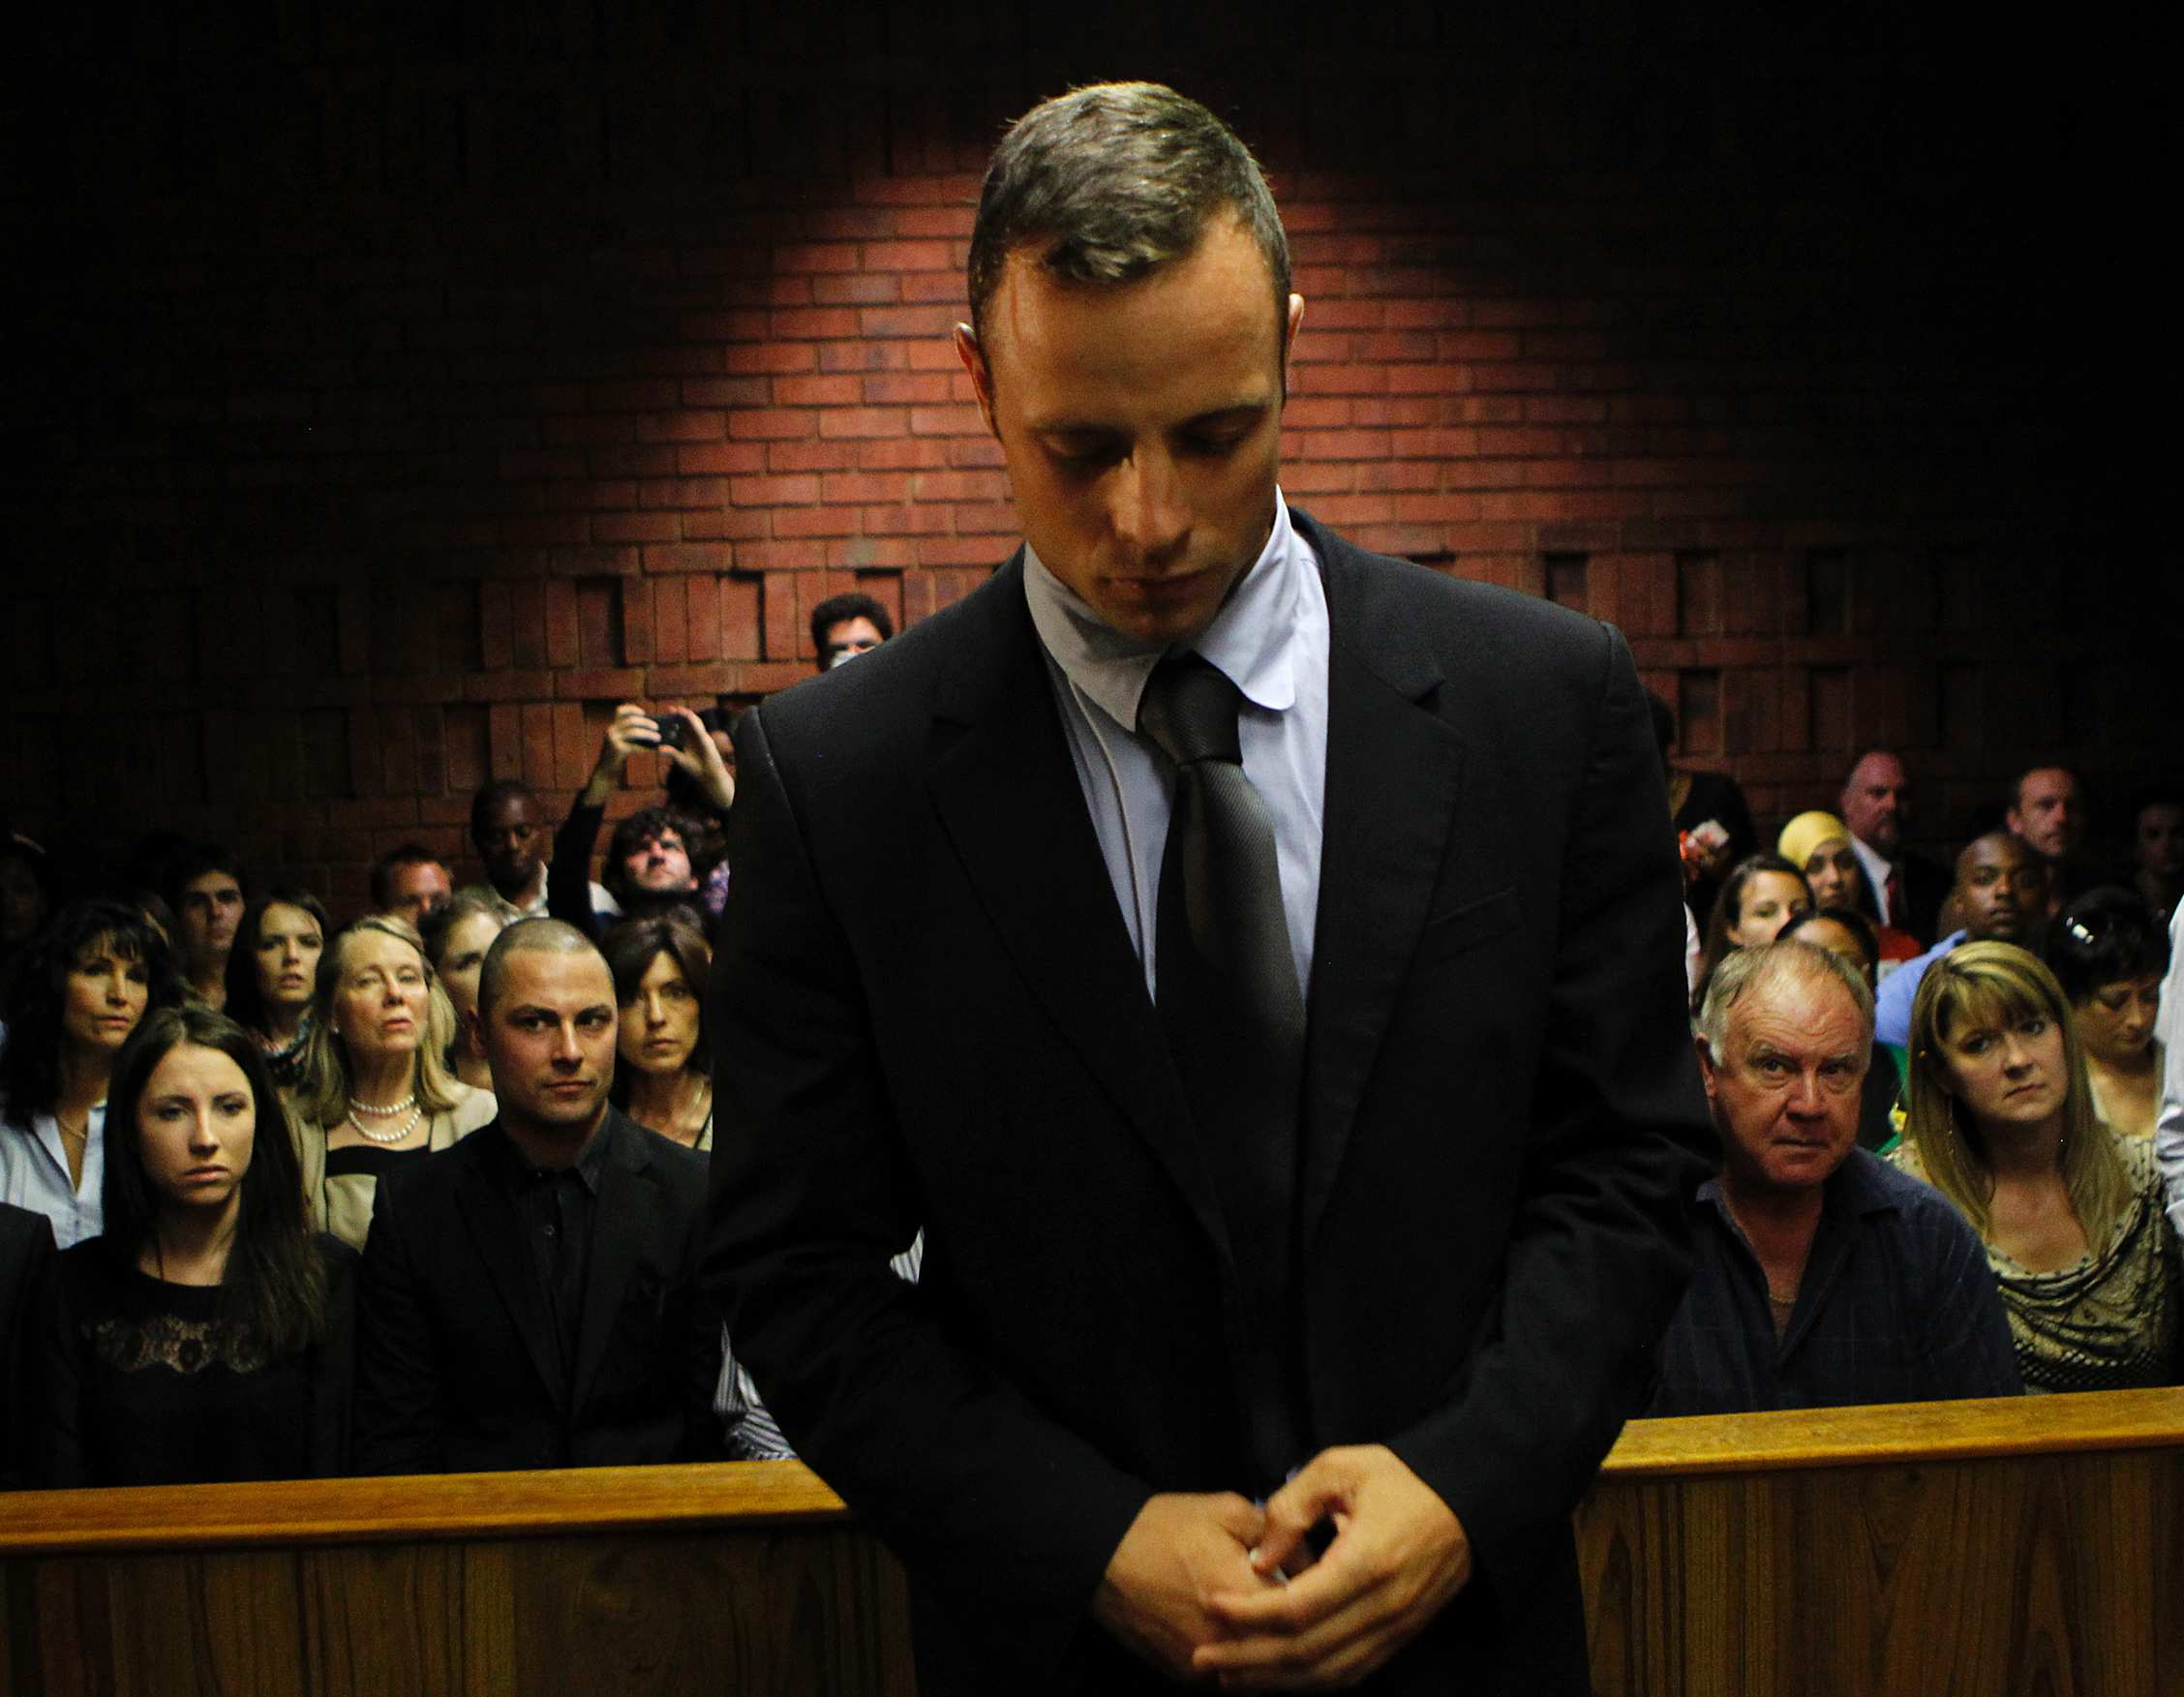 4 oscar pistorious in court on murder charge - biggest sports stories 2013 so far